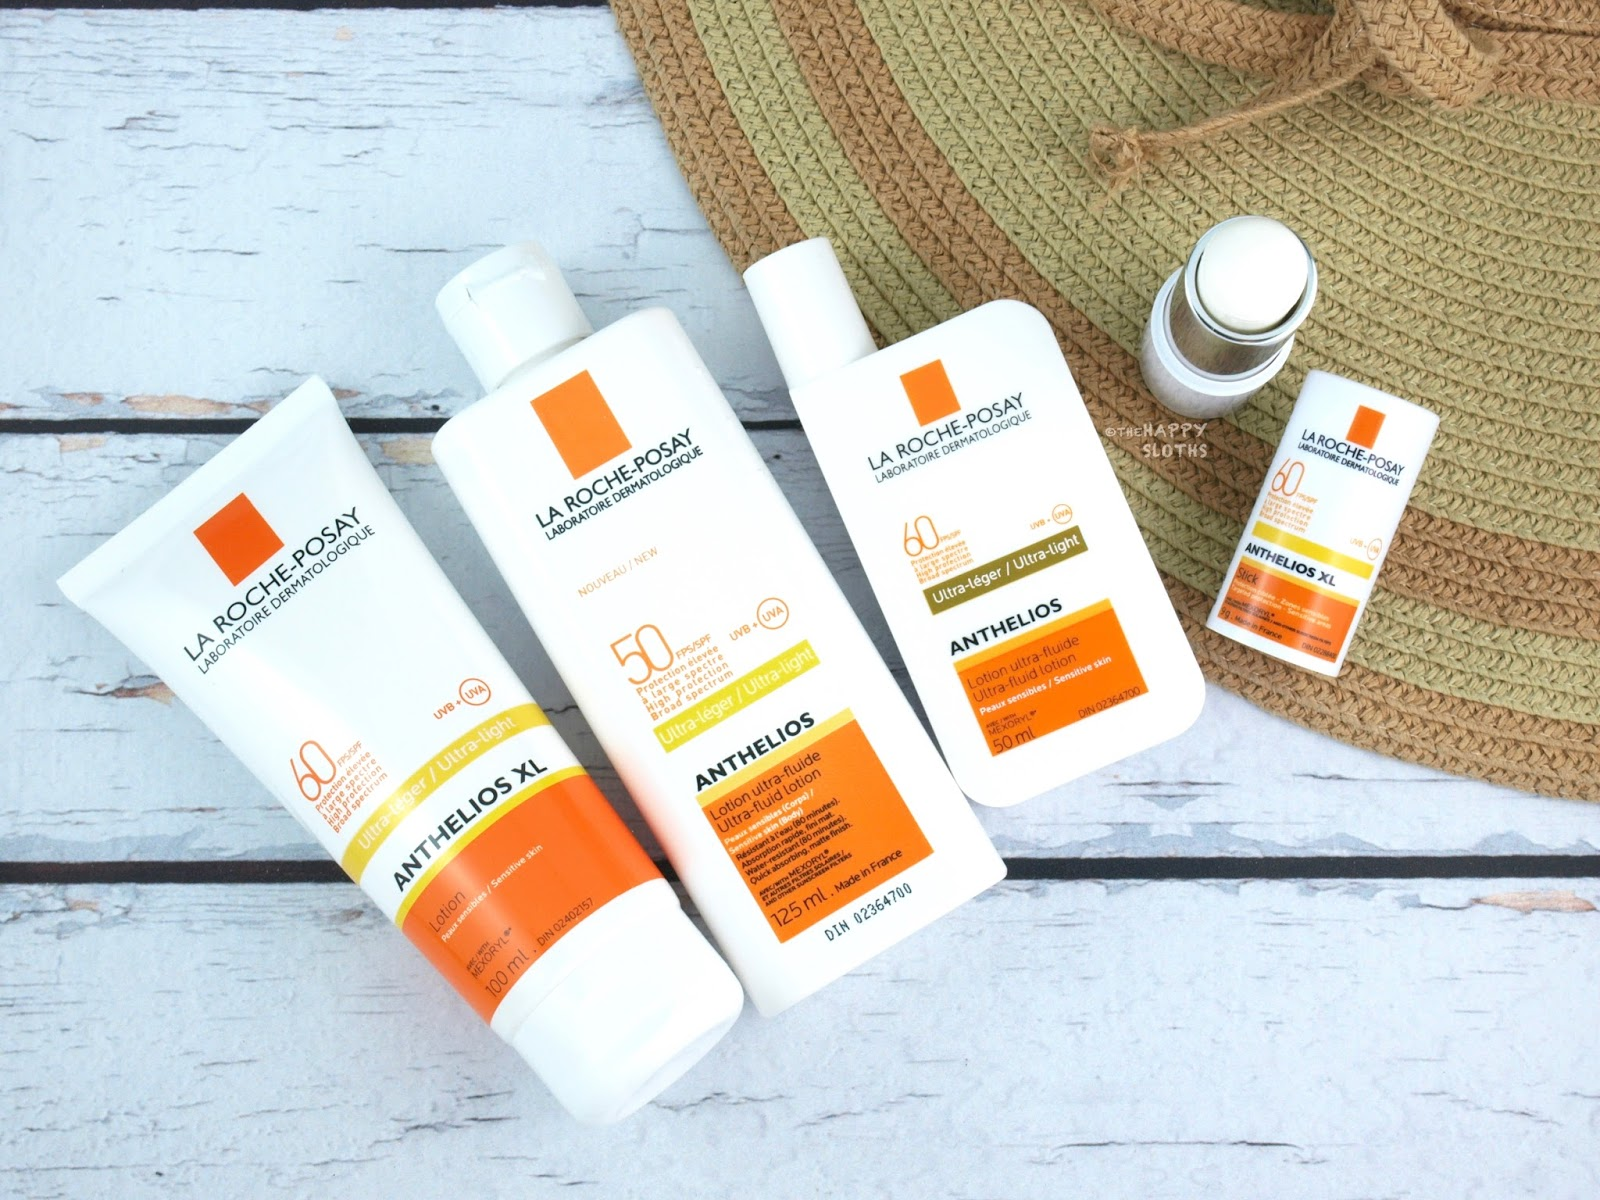 La Roche-Posay | Anthelios Sunscreens